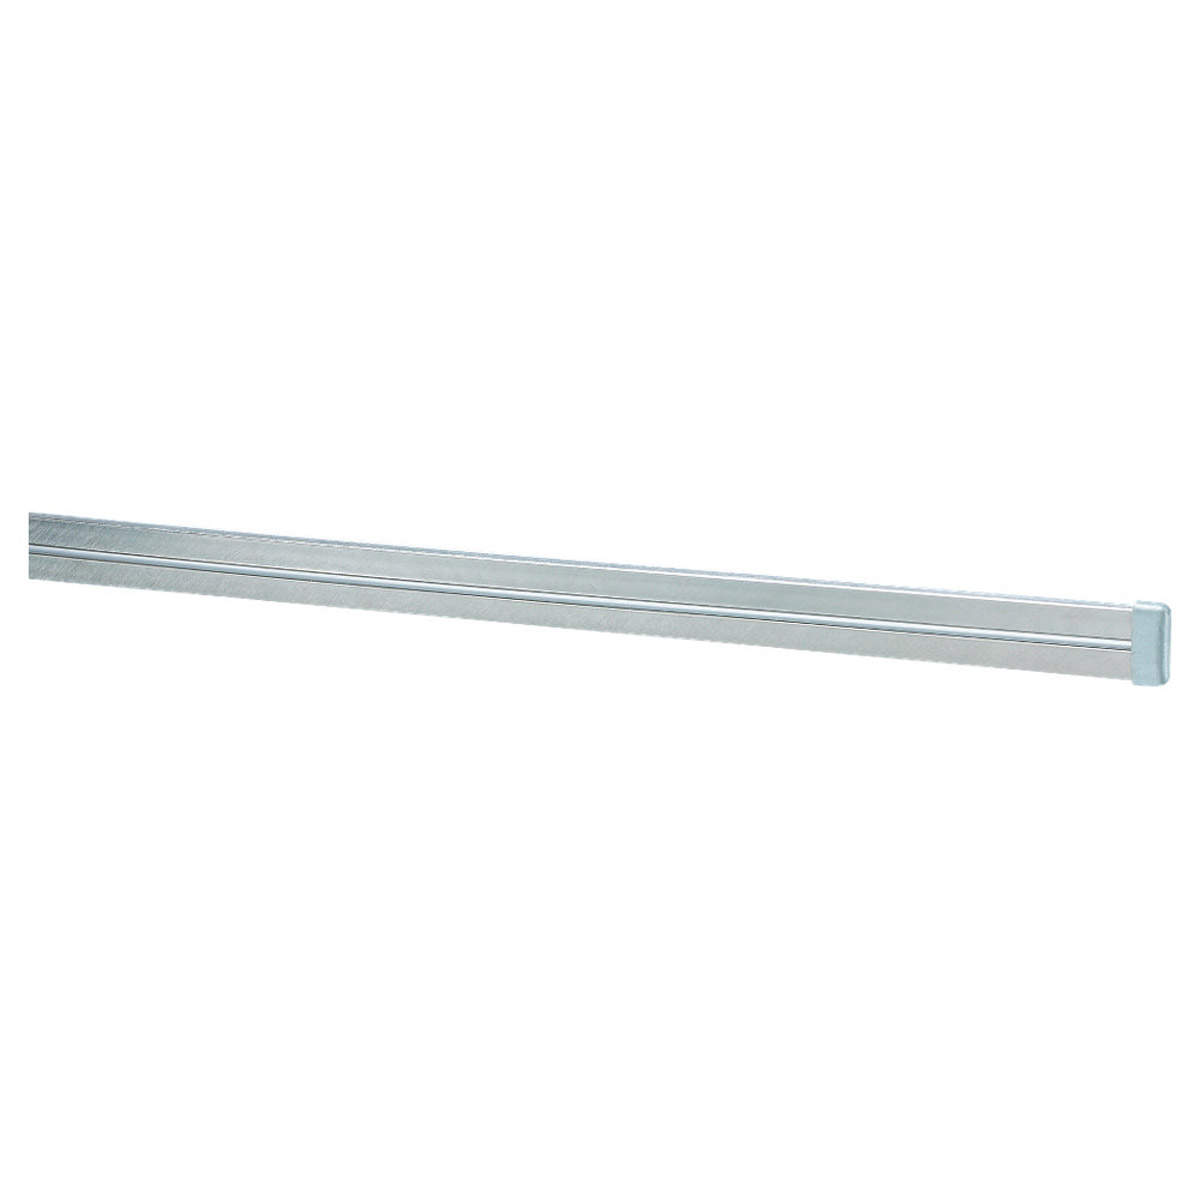 Sea Gull Lighting RTx Eight Foot Rail in Brushed Stainless 95301-98 photo